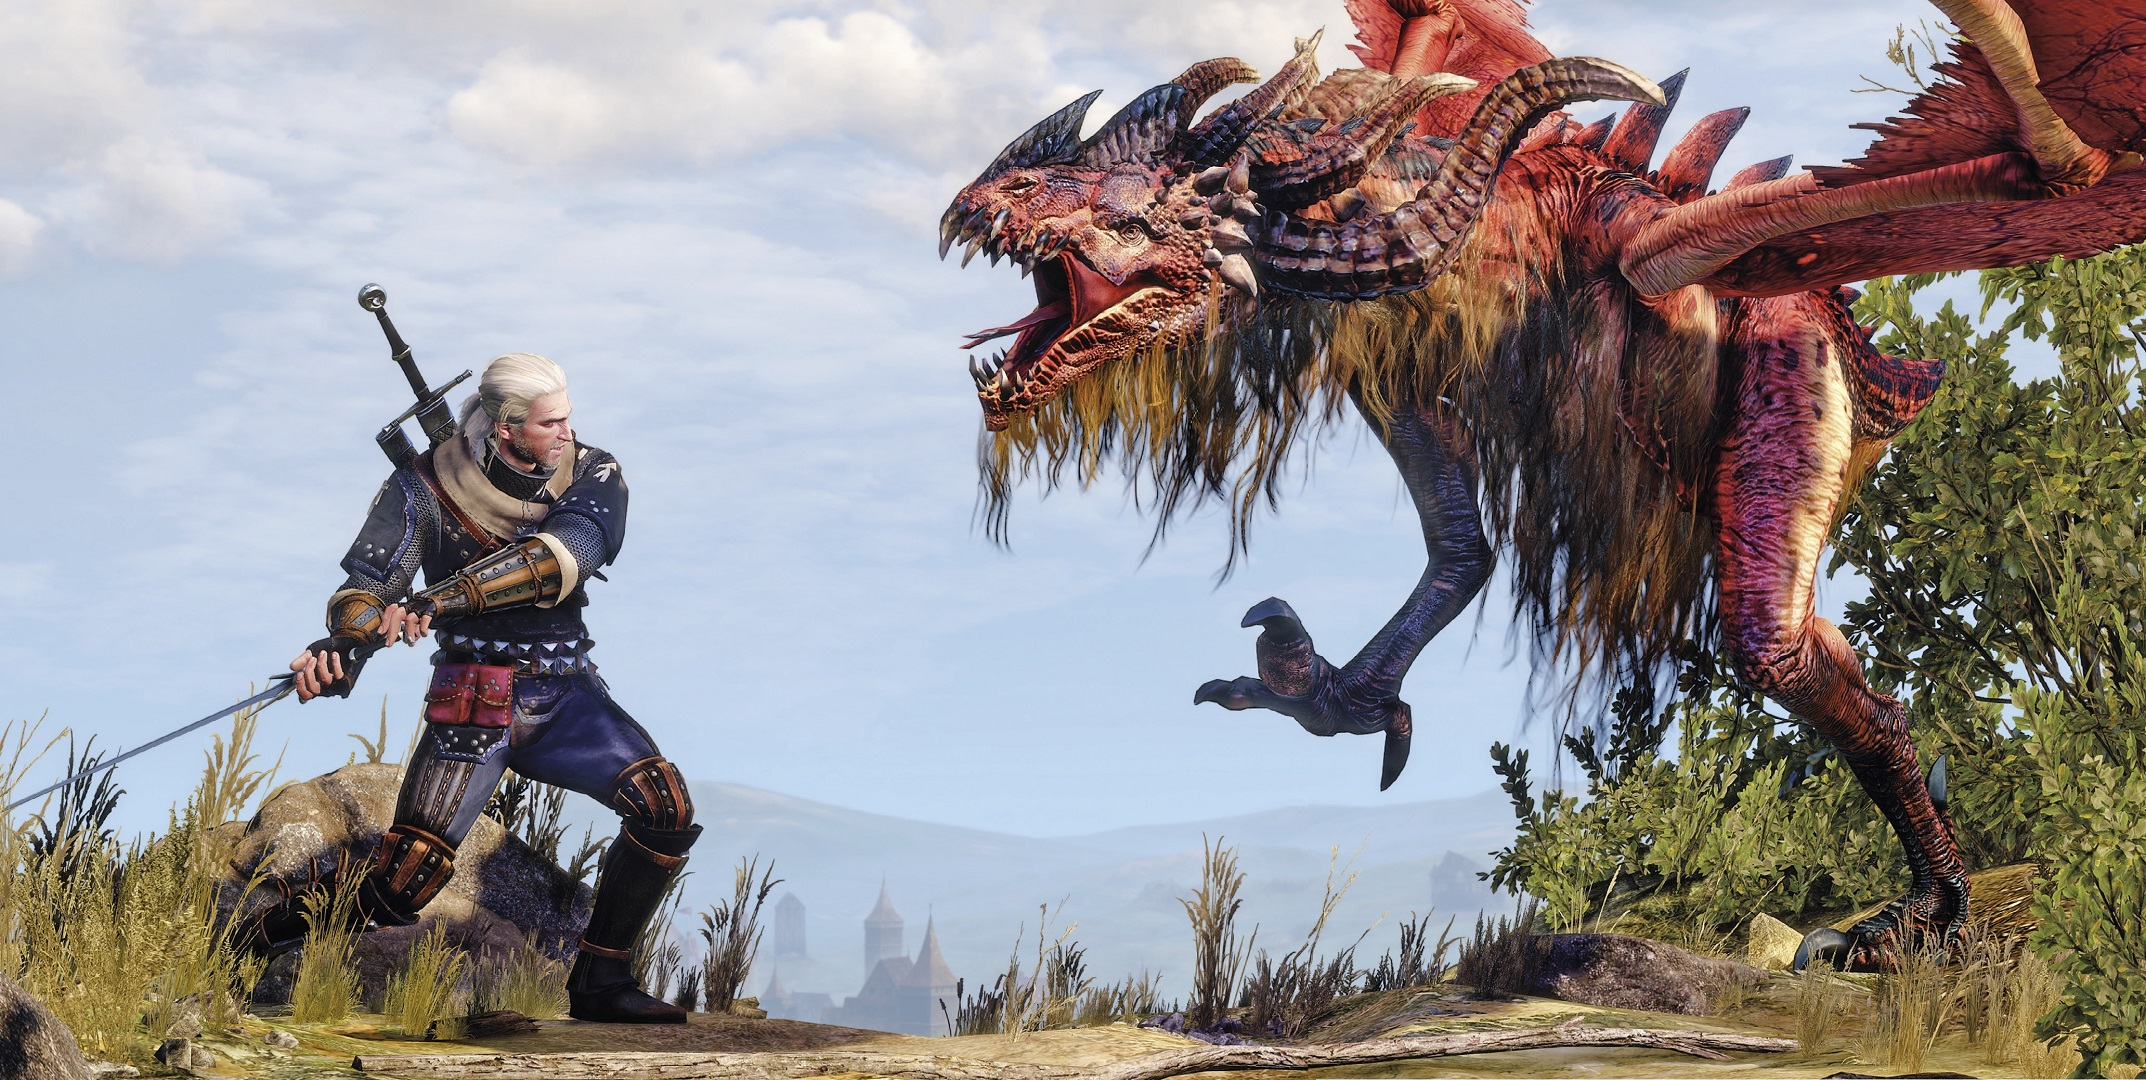 New PC Screenshots for the Witcher 3 PC